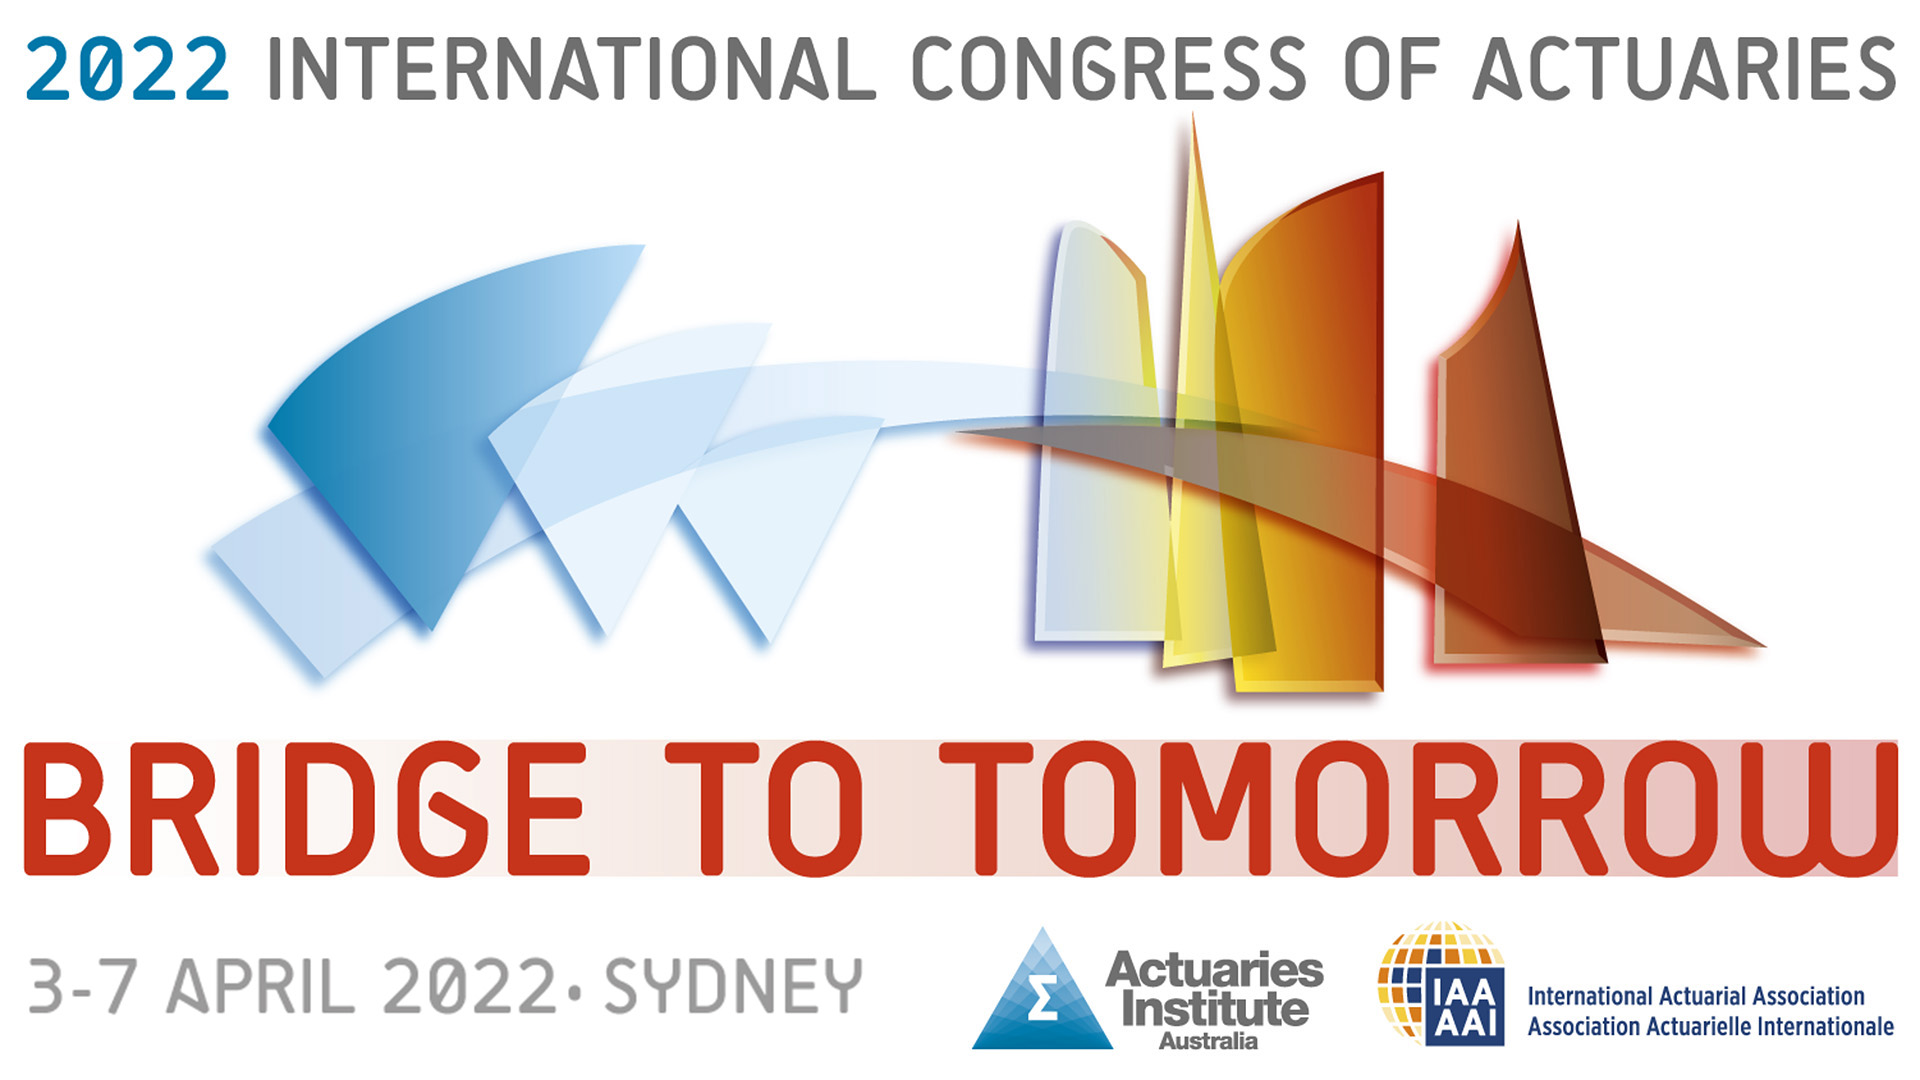 ICA 2022 Hosted by the Actuaries Institute Australia